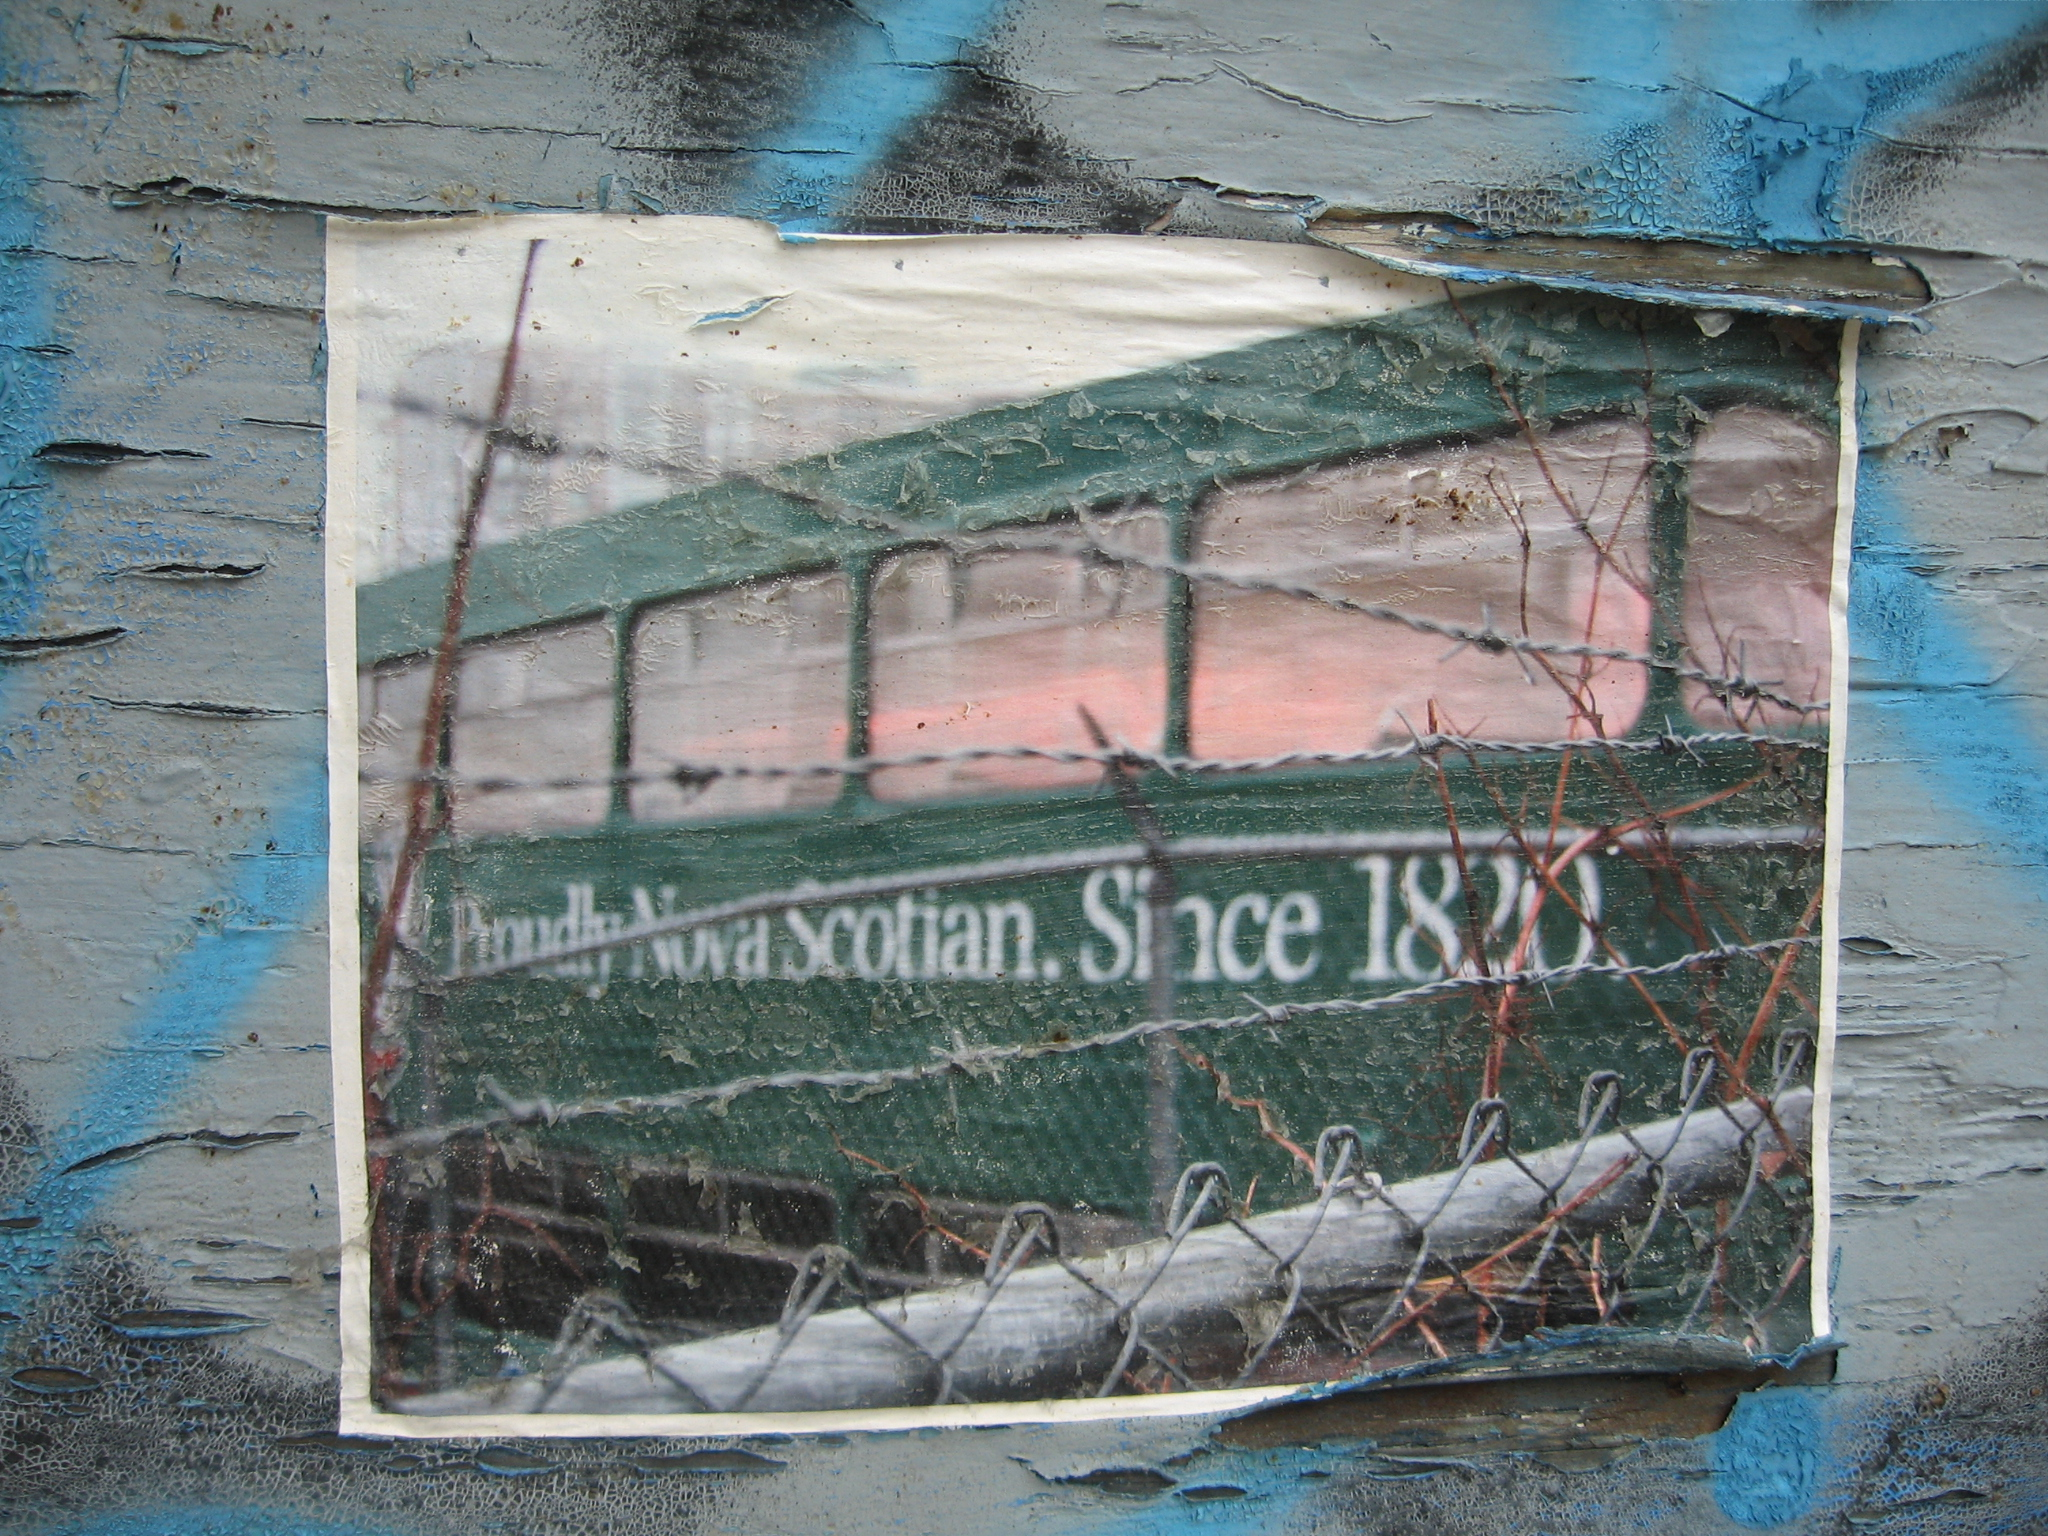 Photocopy of a double-decker tour bus plastered on a garage door on Harris Street.